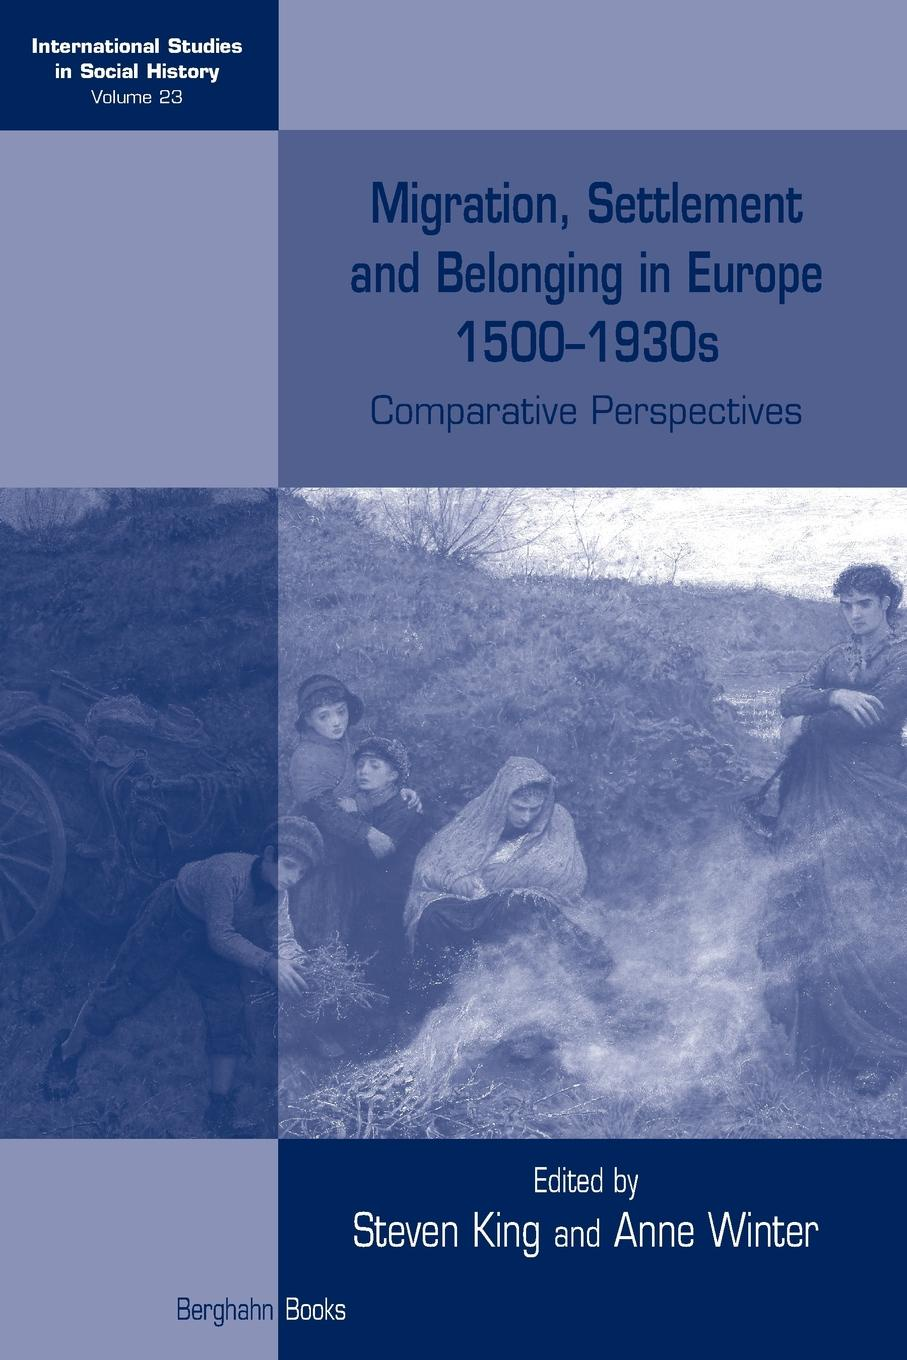 Migration, Settlement and Belonging in Europe, 1500-1930s. Comparative Perspectives montserrat guibernau belonging solidarity and division in modern societies